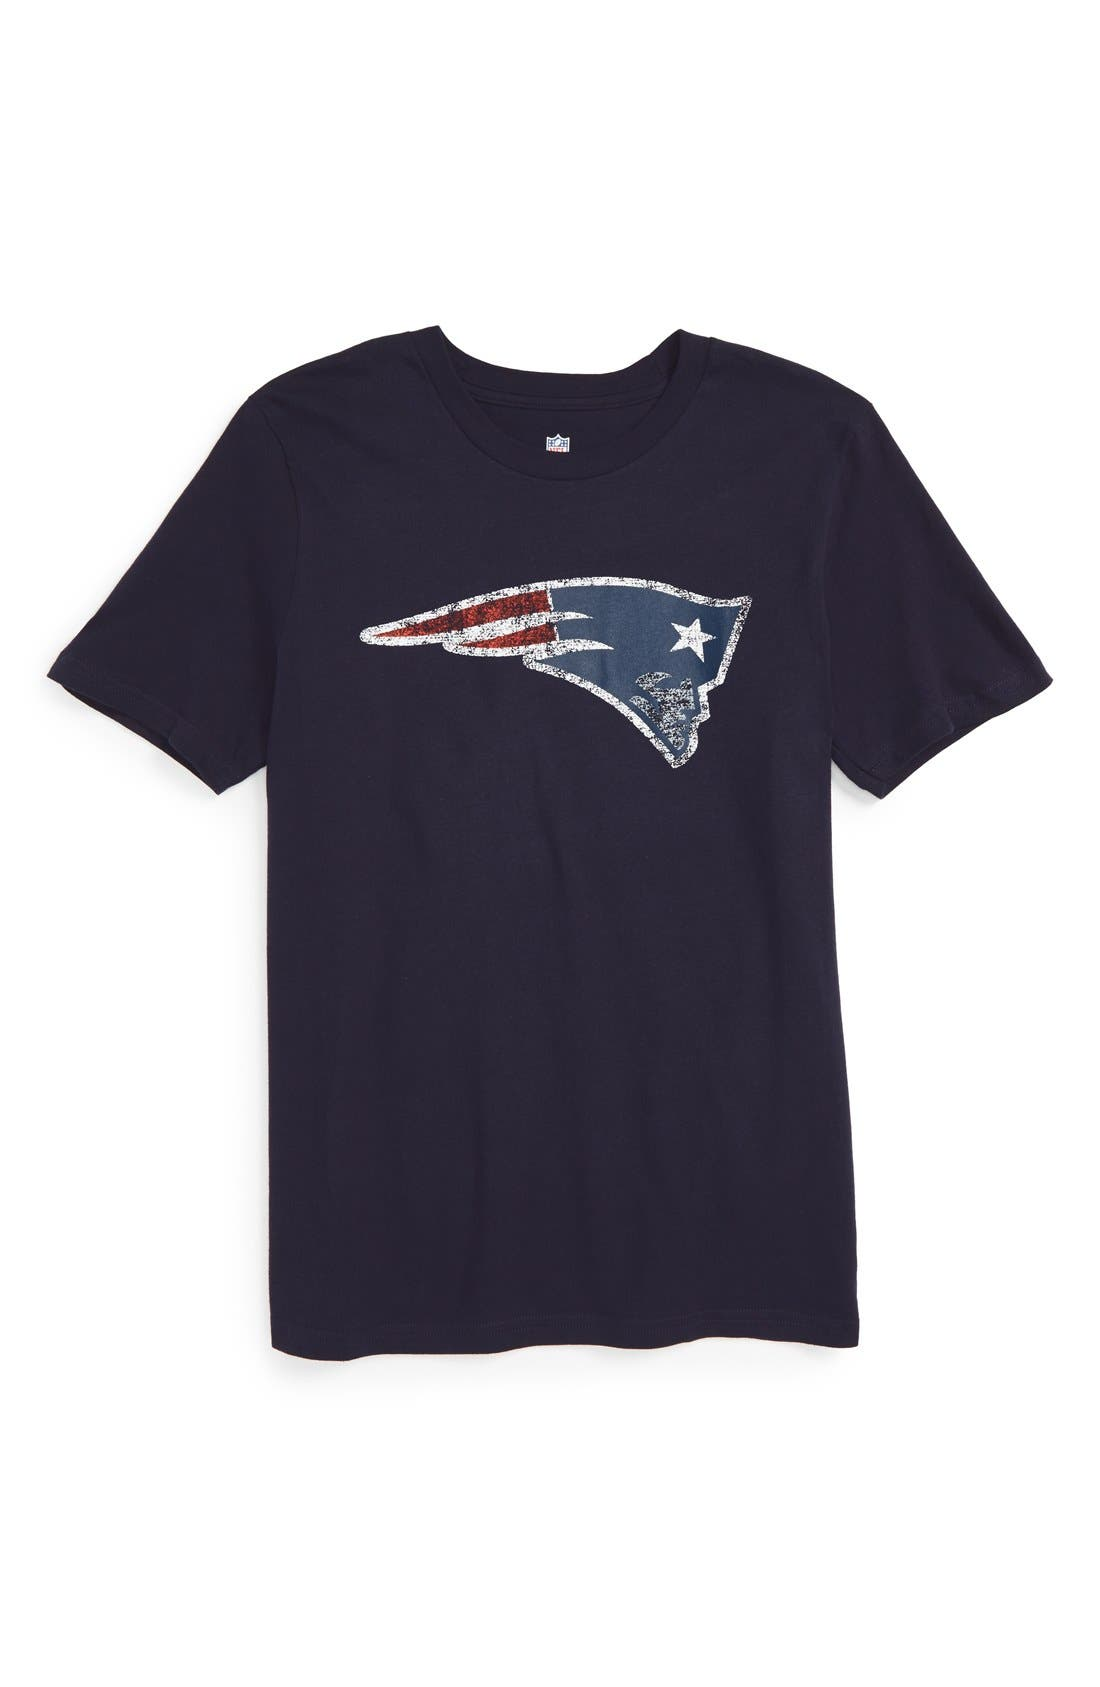 Main Image - Outerstuff 'NFL - New England Patriots' Distressed Logo Graphic T-Shirt (Big Boys)